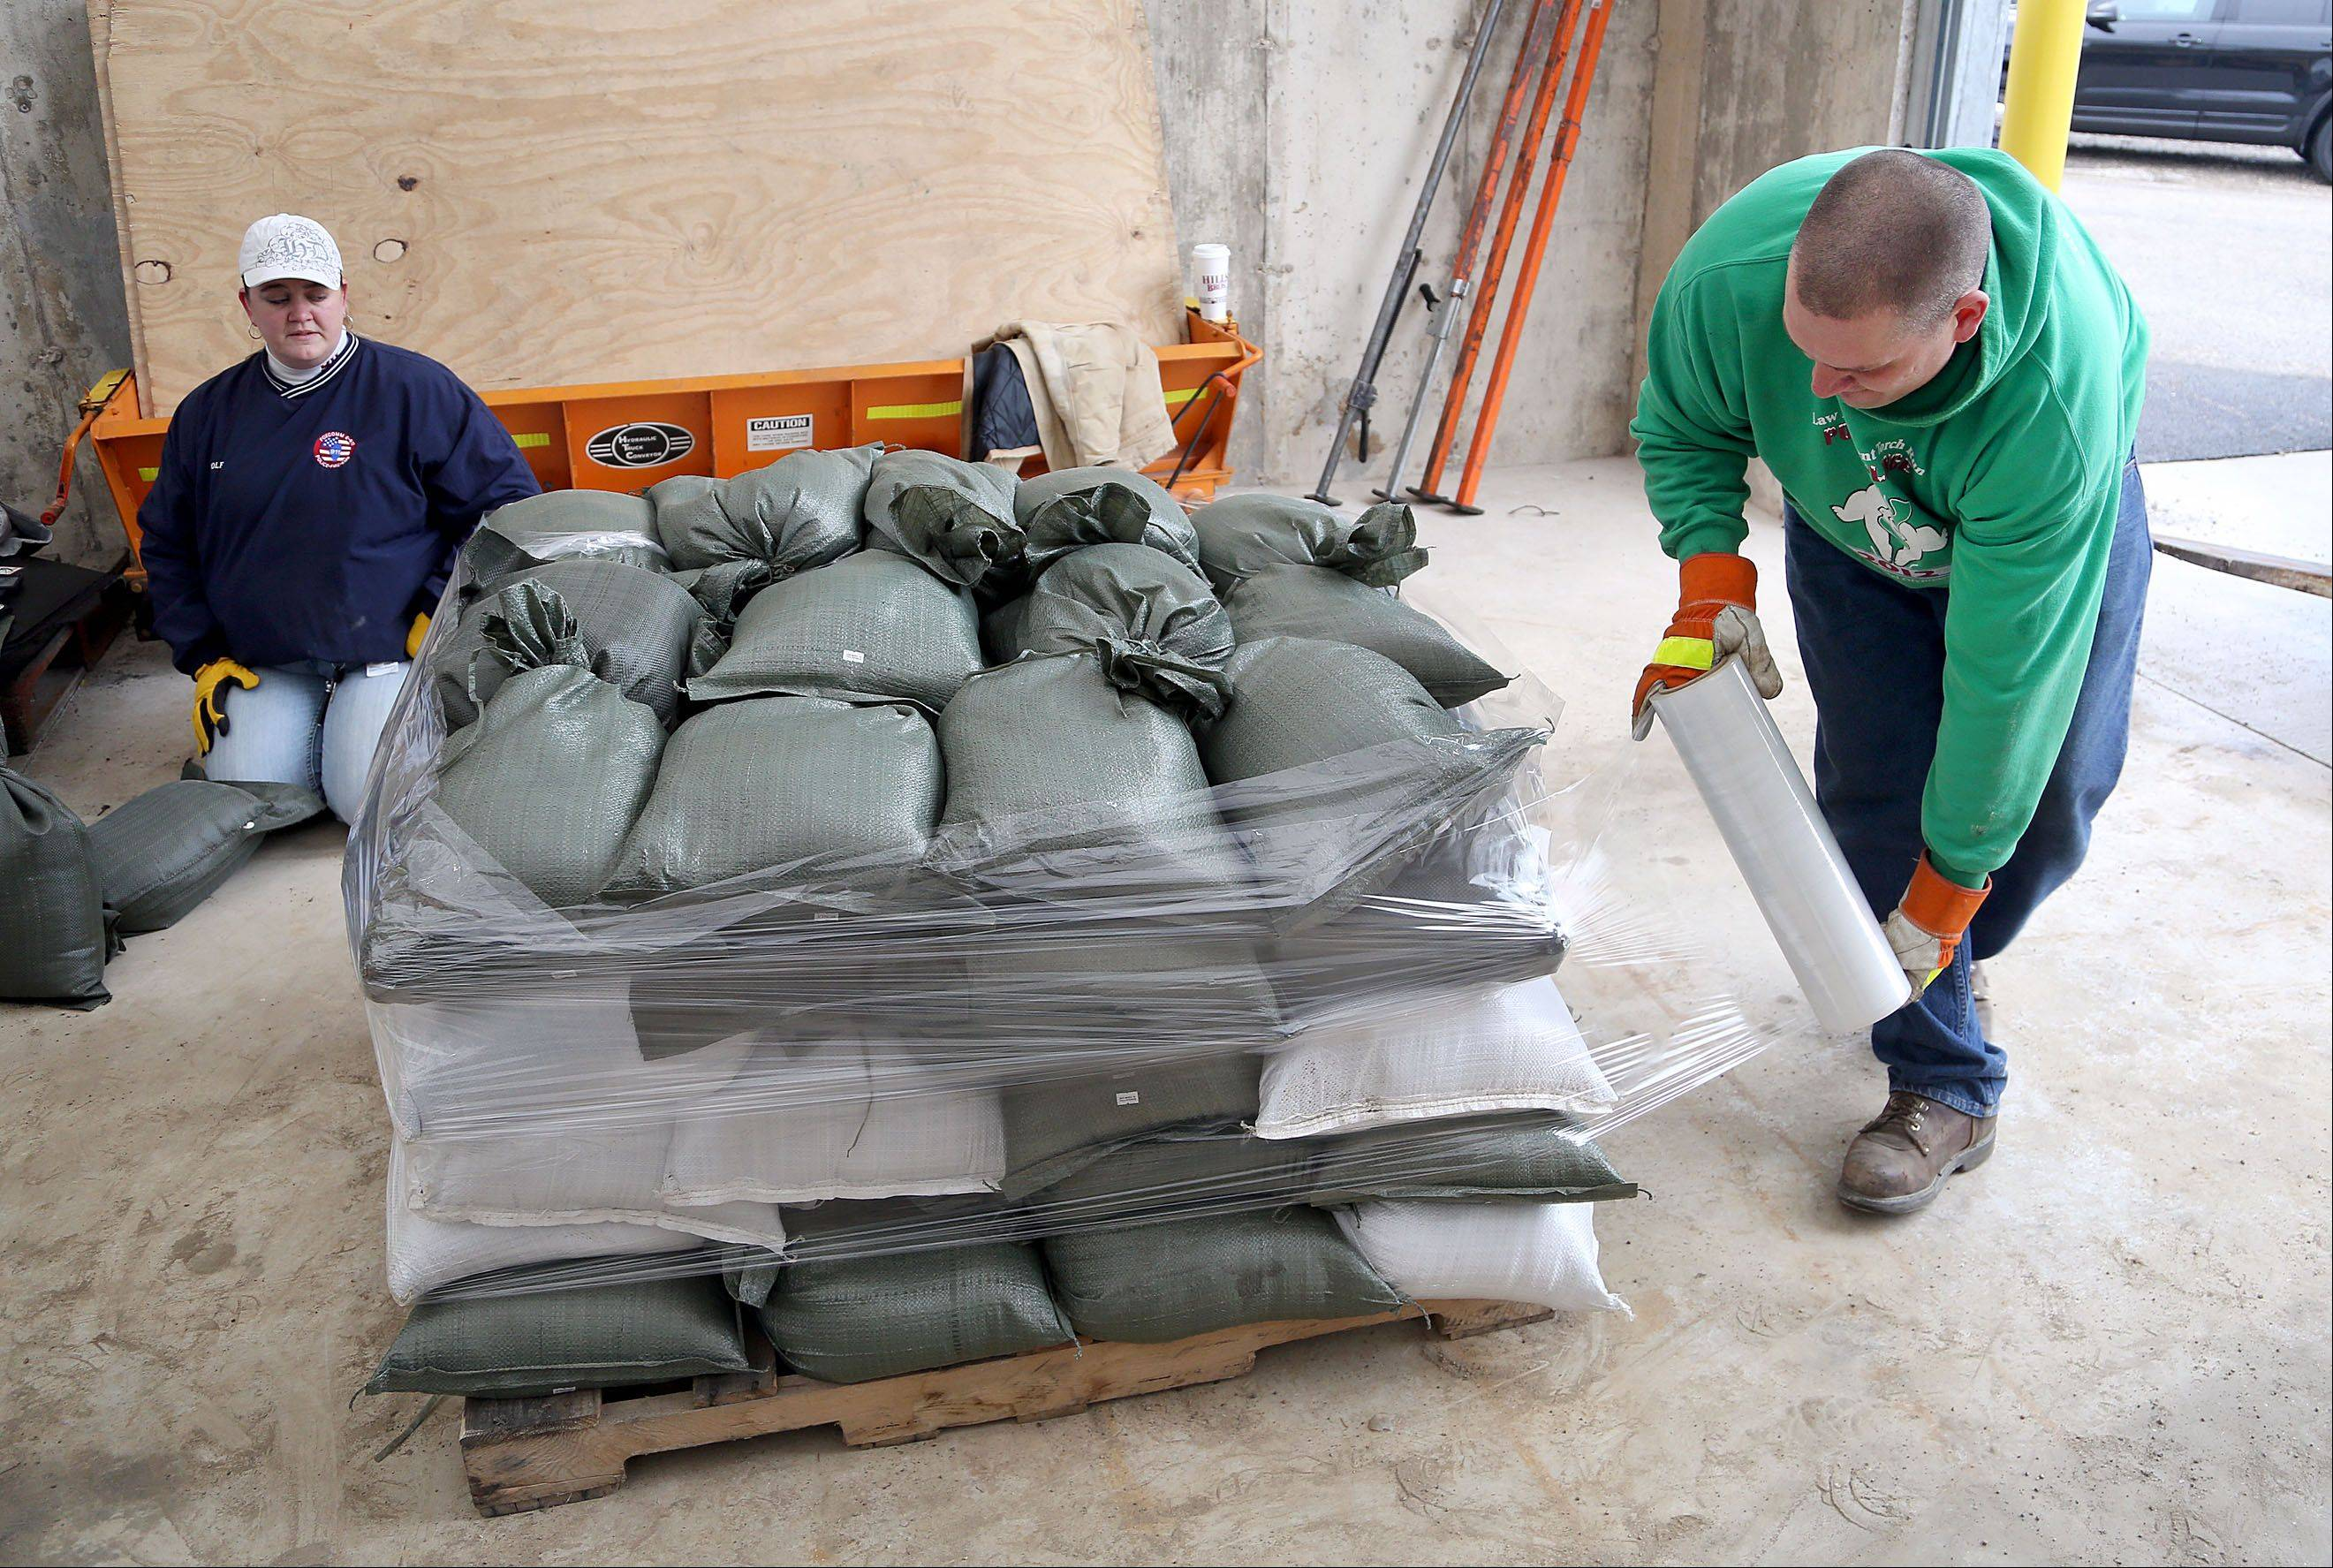 Fox Lake Works Department employee Dana Magness wraps a palate of sand bags at the Fox Lake Works Building Friday morning. The bags will be distributed to areas commonly affected by flooding in the Fox Lake area.